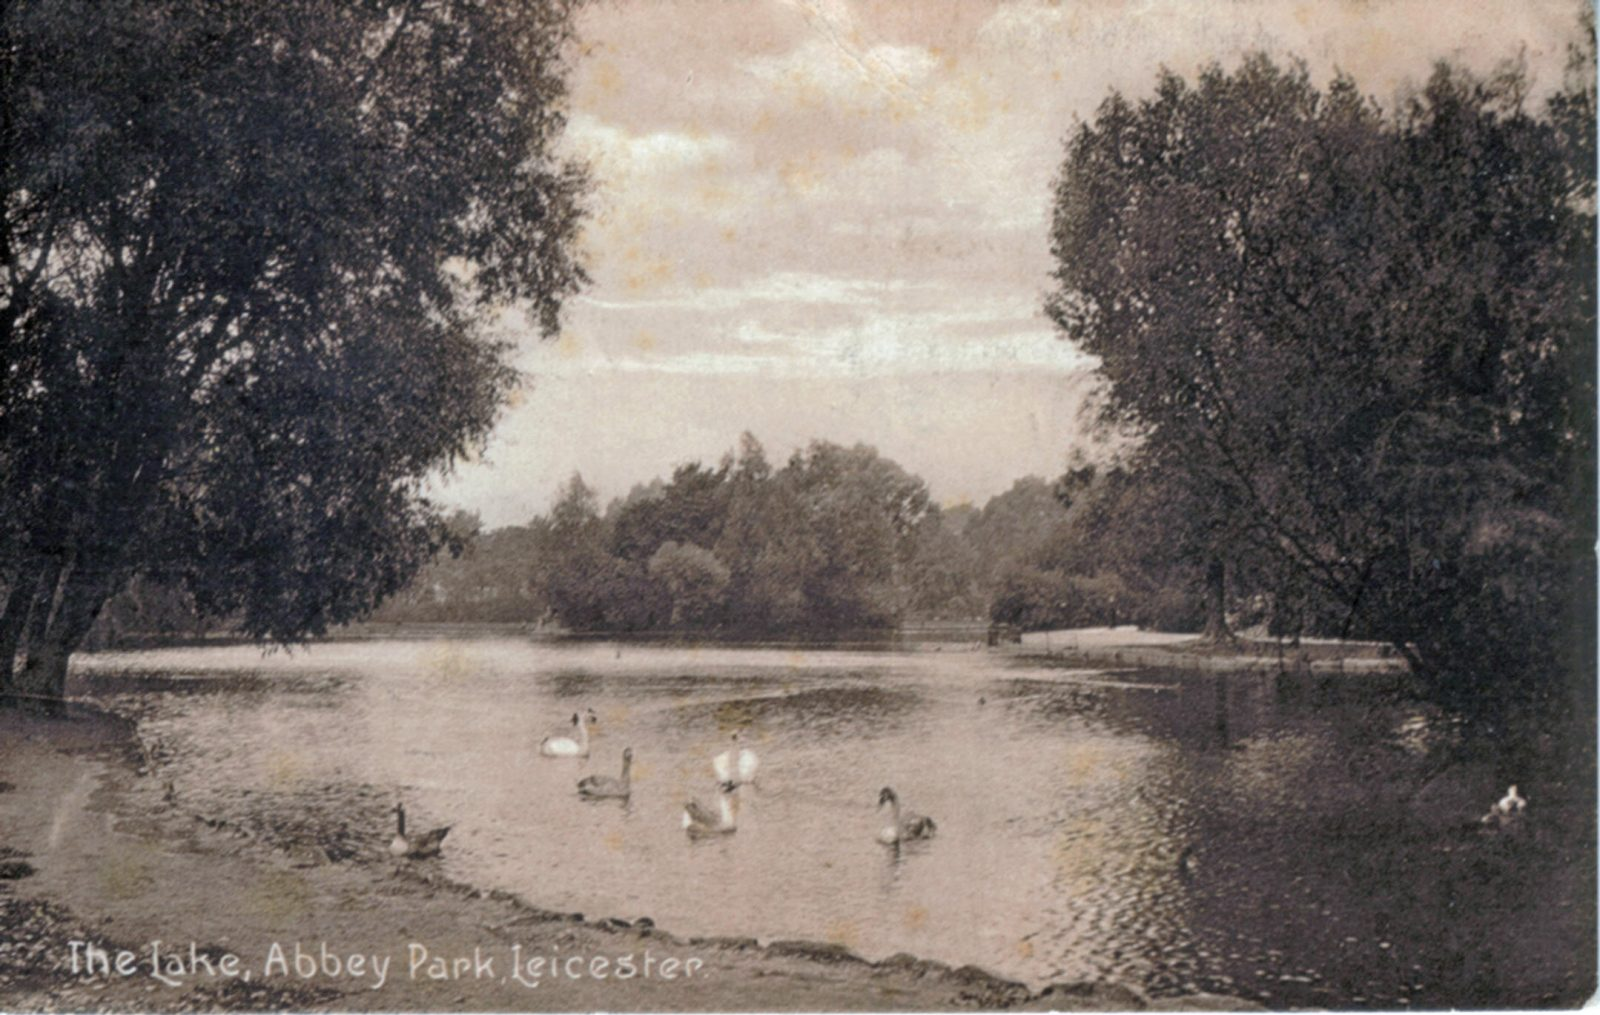 Abbey Park, Leicester. Undated: The lake with swans. (File:1032)